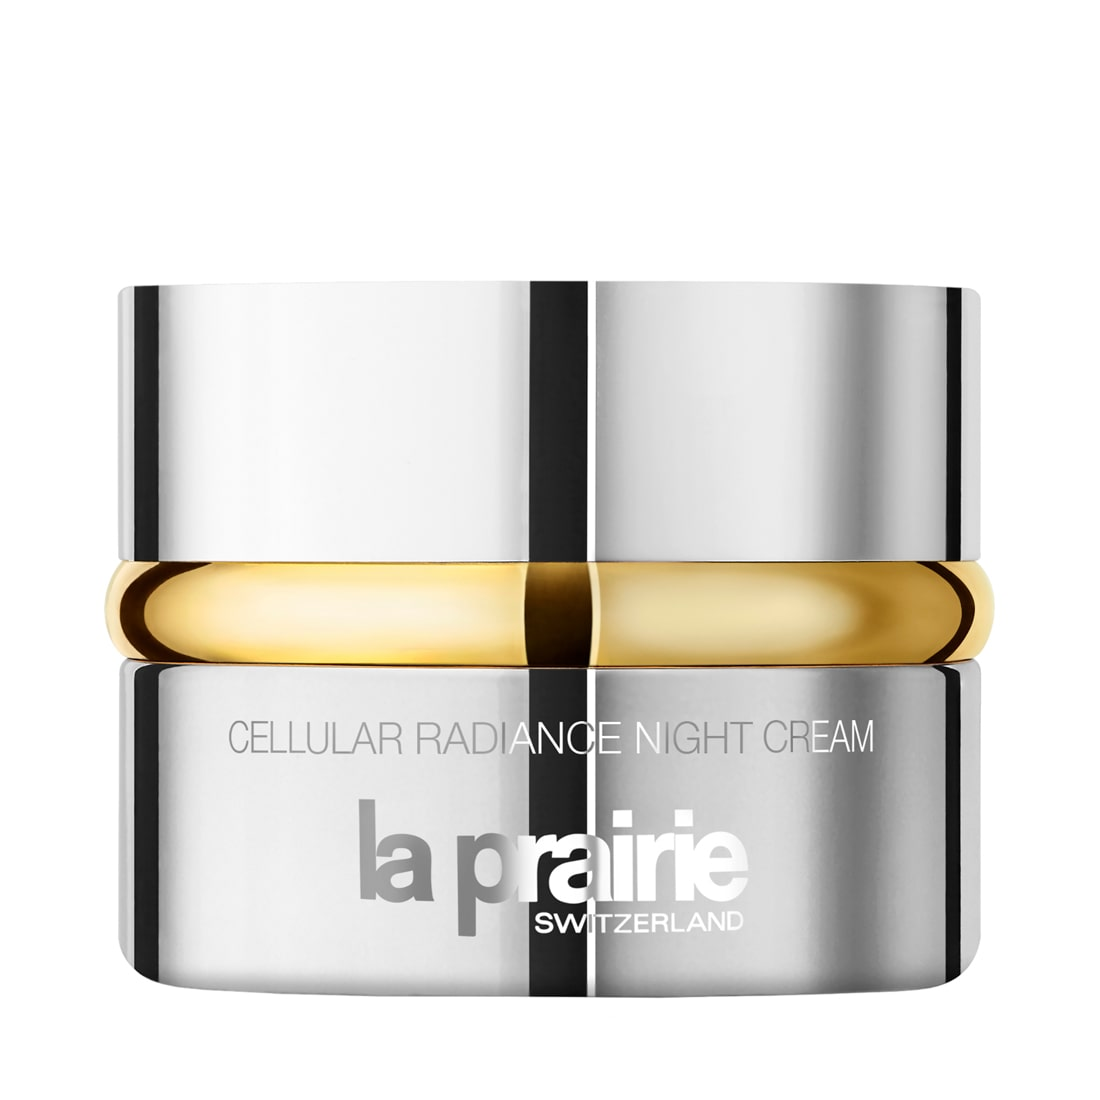 Cellular Radiance Night Cream 50ml